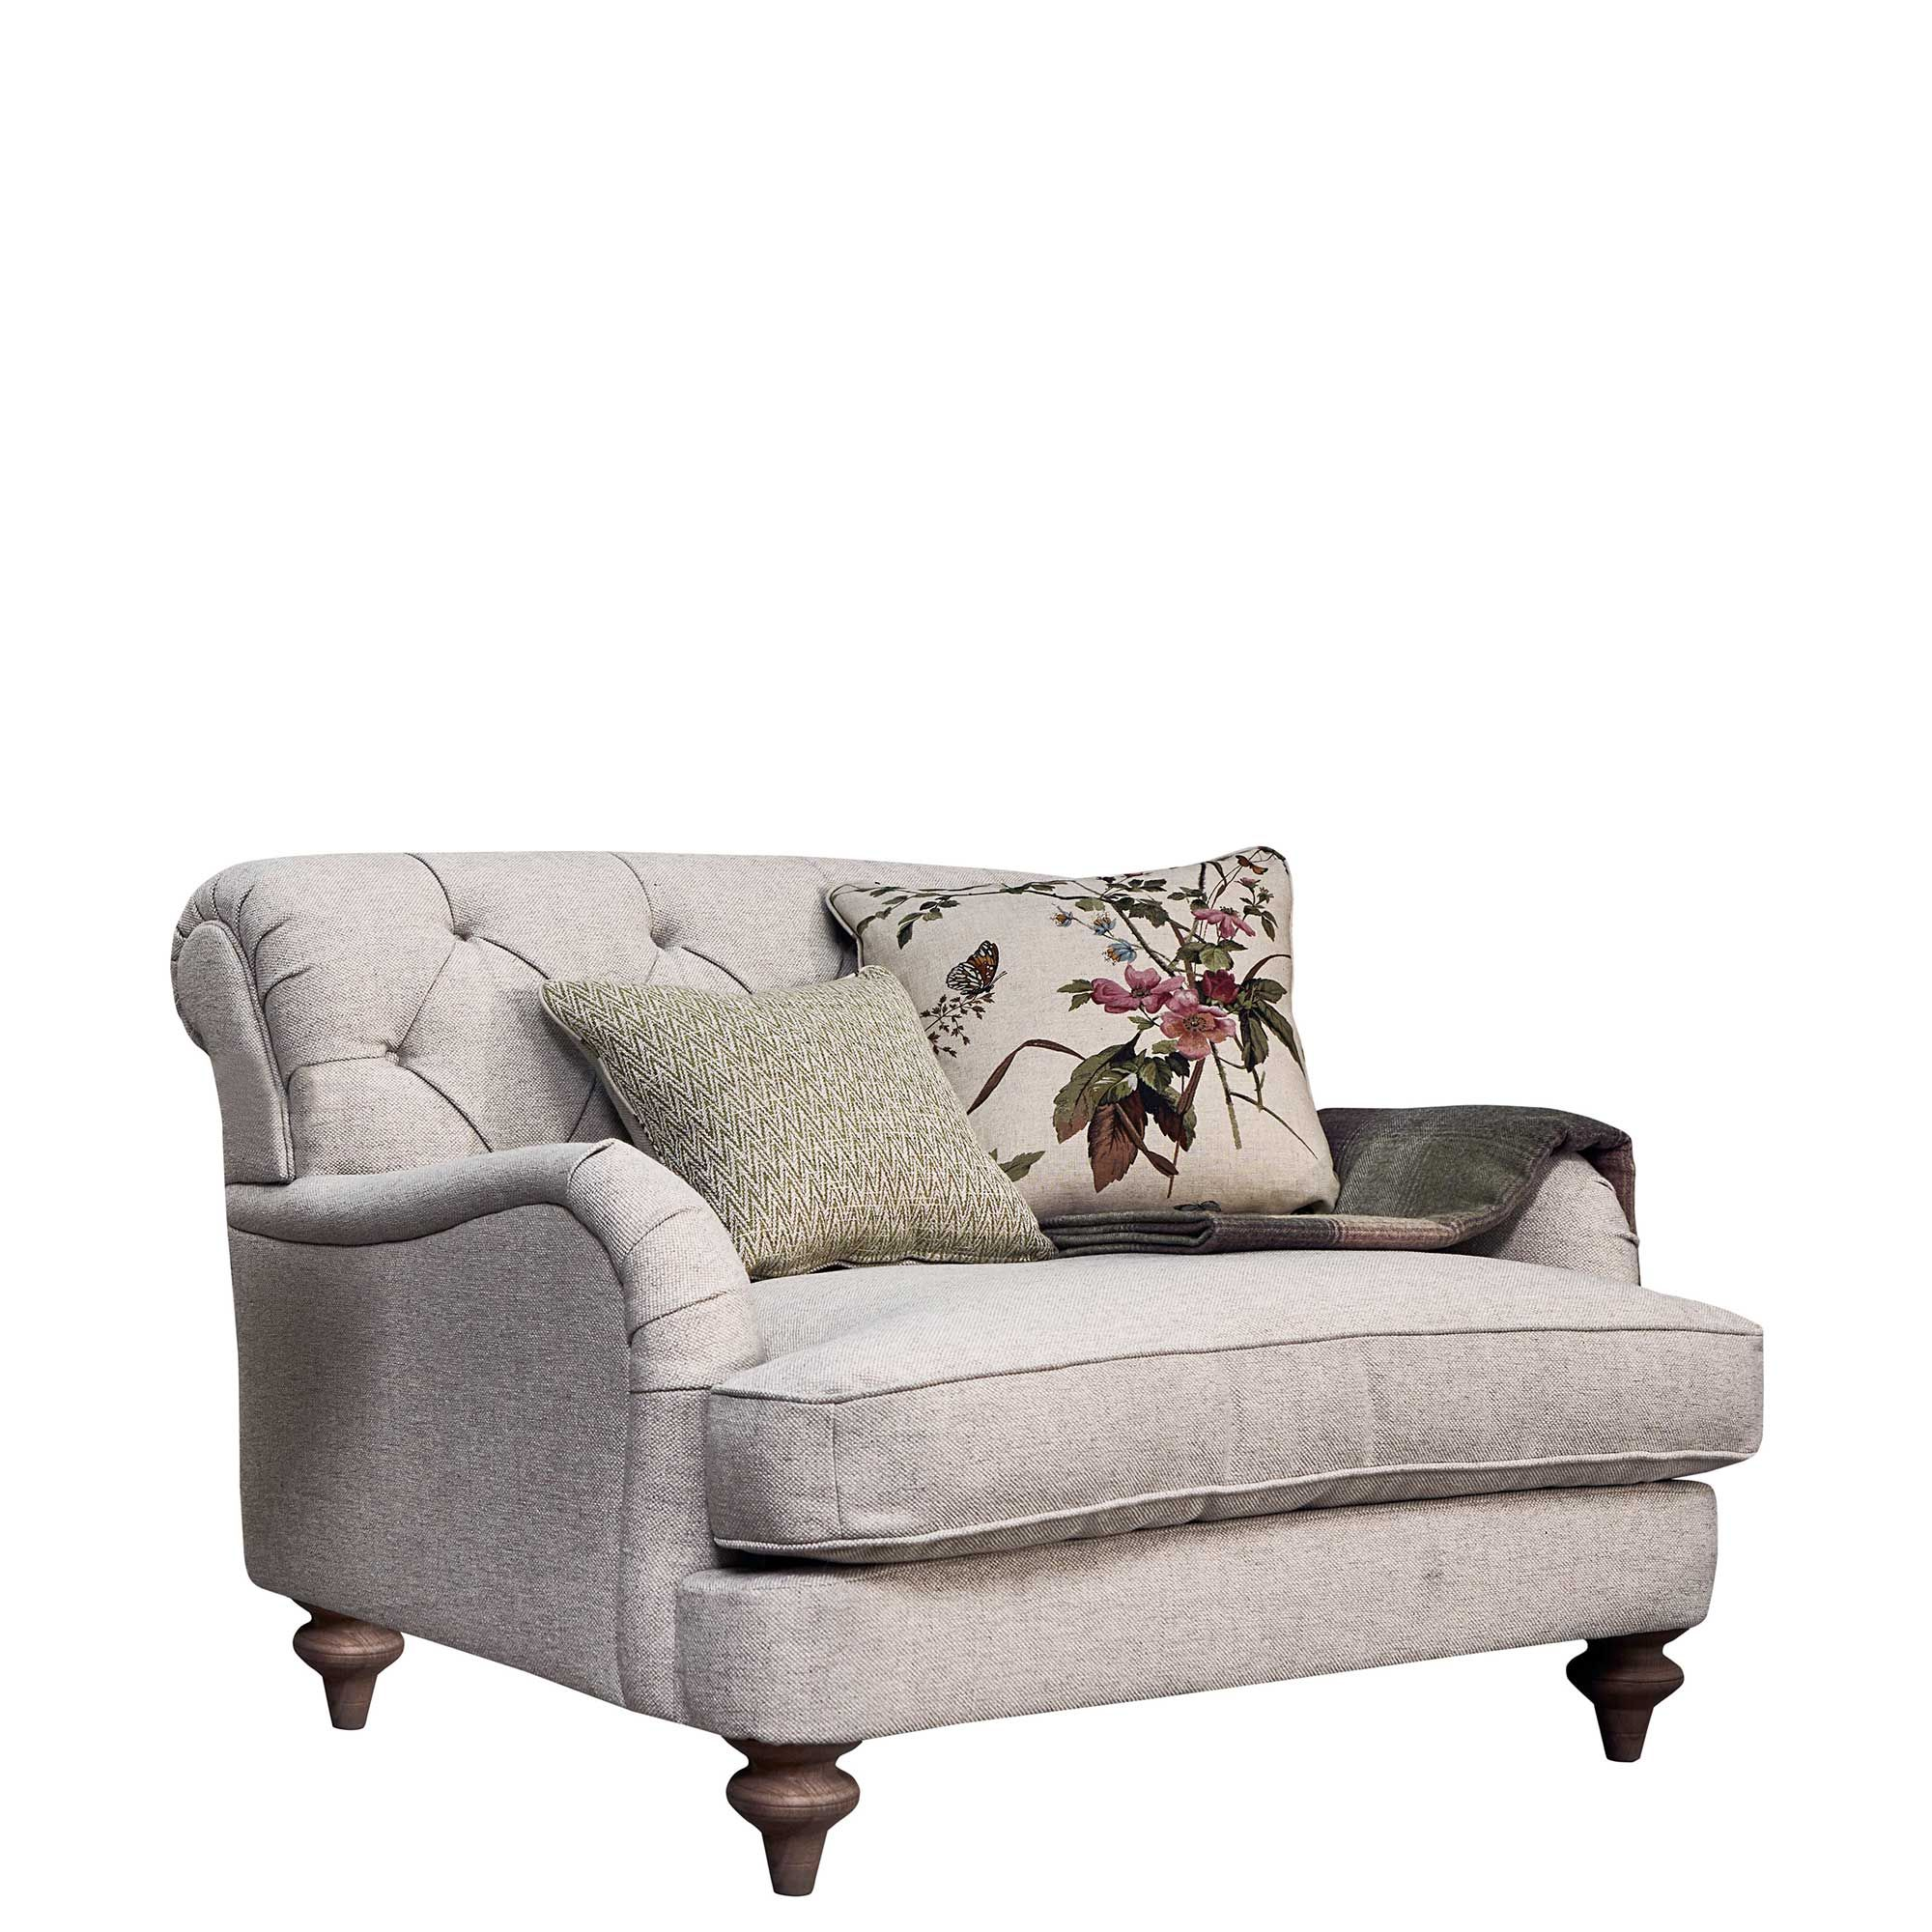 furniture sofas couch loveseats sofa sectionals cheap size wooden under full tufted deals curved loveseat of rustic leather tables sectional set